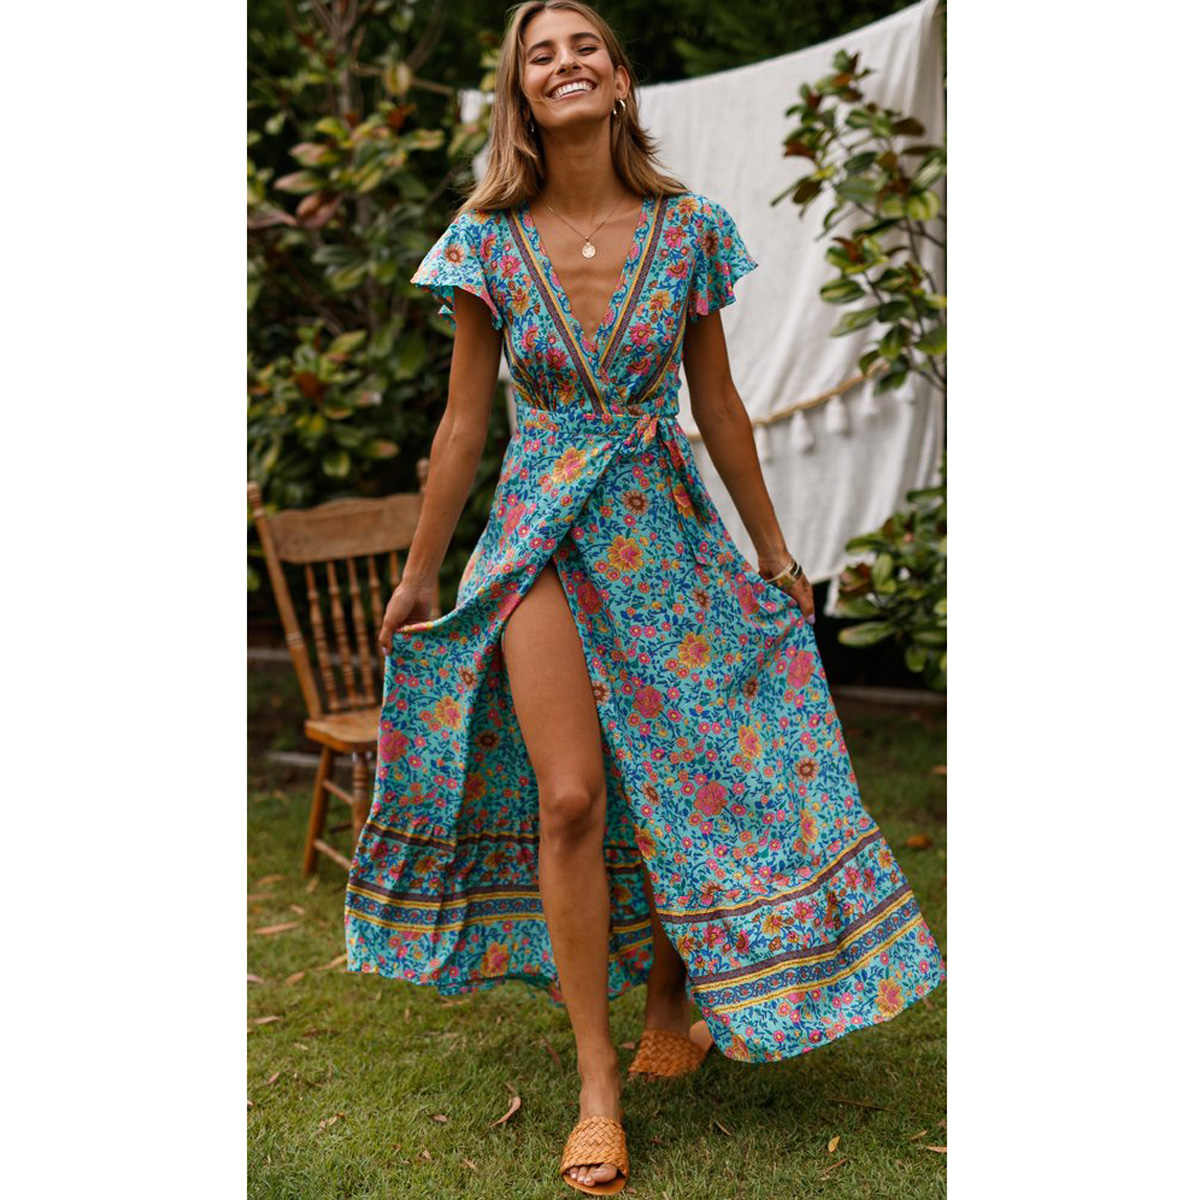 ... Jastie Green Floral Print Wrap Dress Short Butterfly Sleeves Boho  Summer Dresses V-Neck Women ...